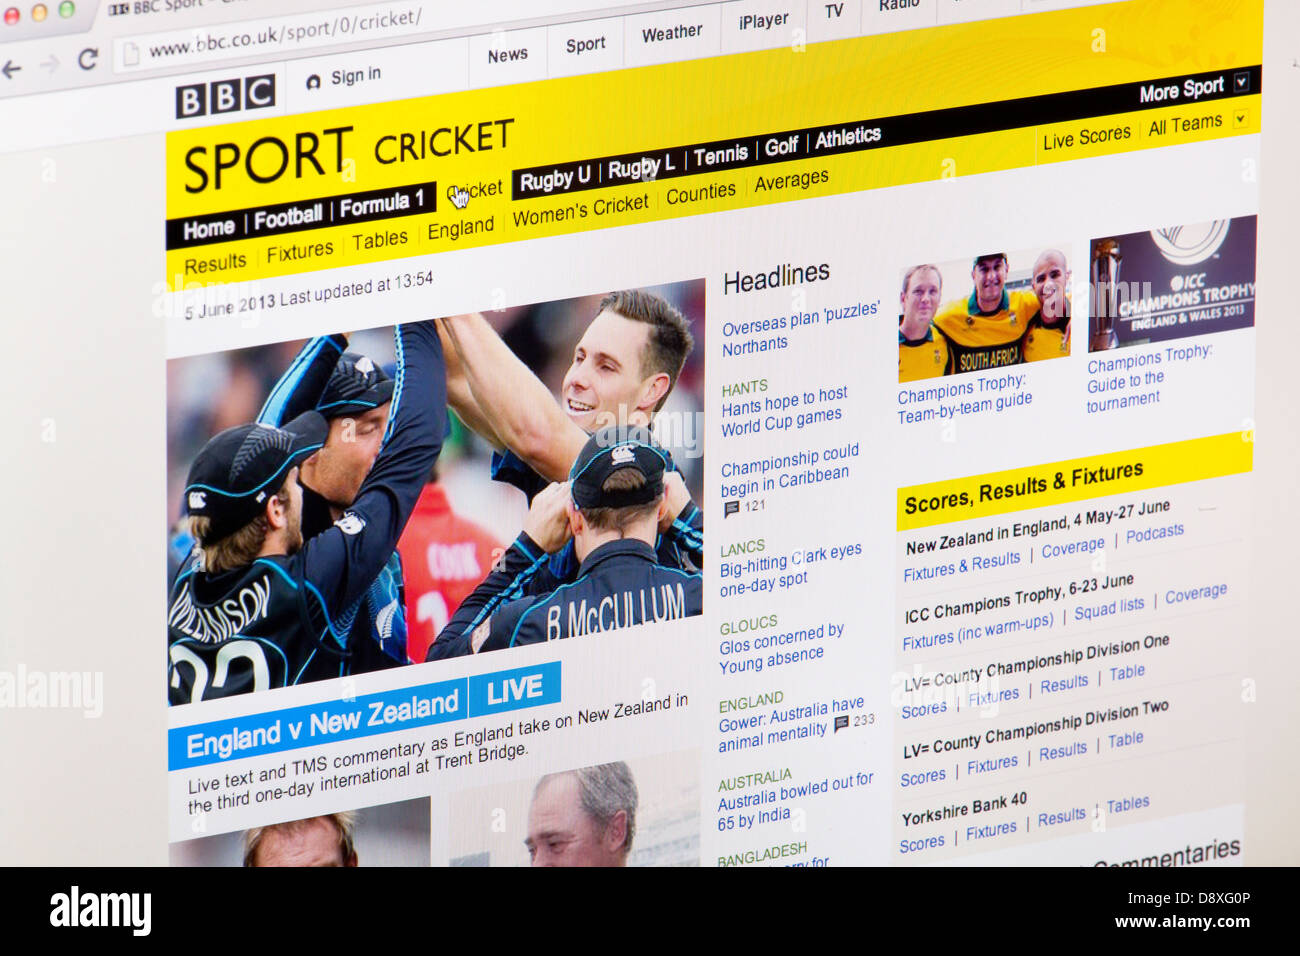 BBC Sport Cricket Home Page Website or web page on a laptop screen or computer monitor - Stock Image